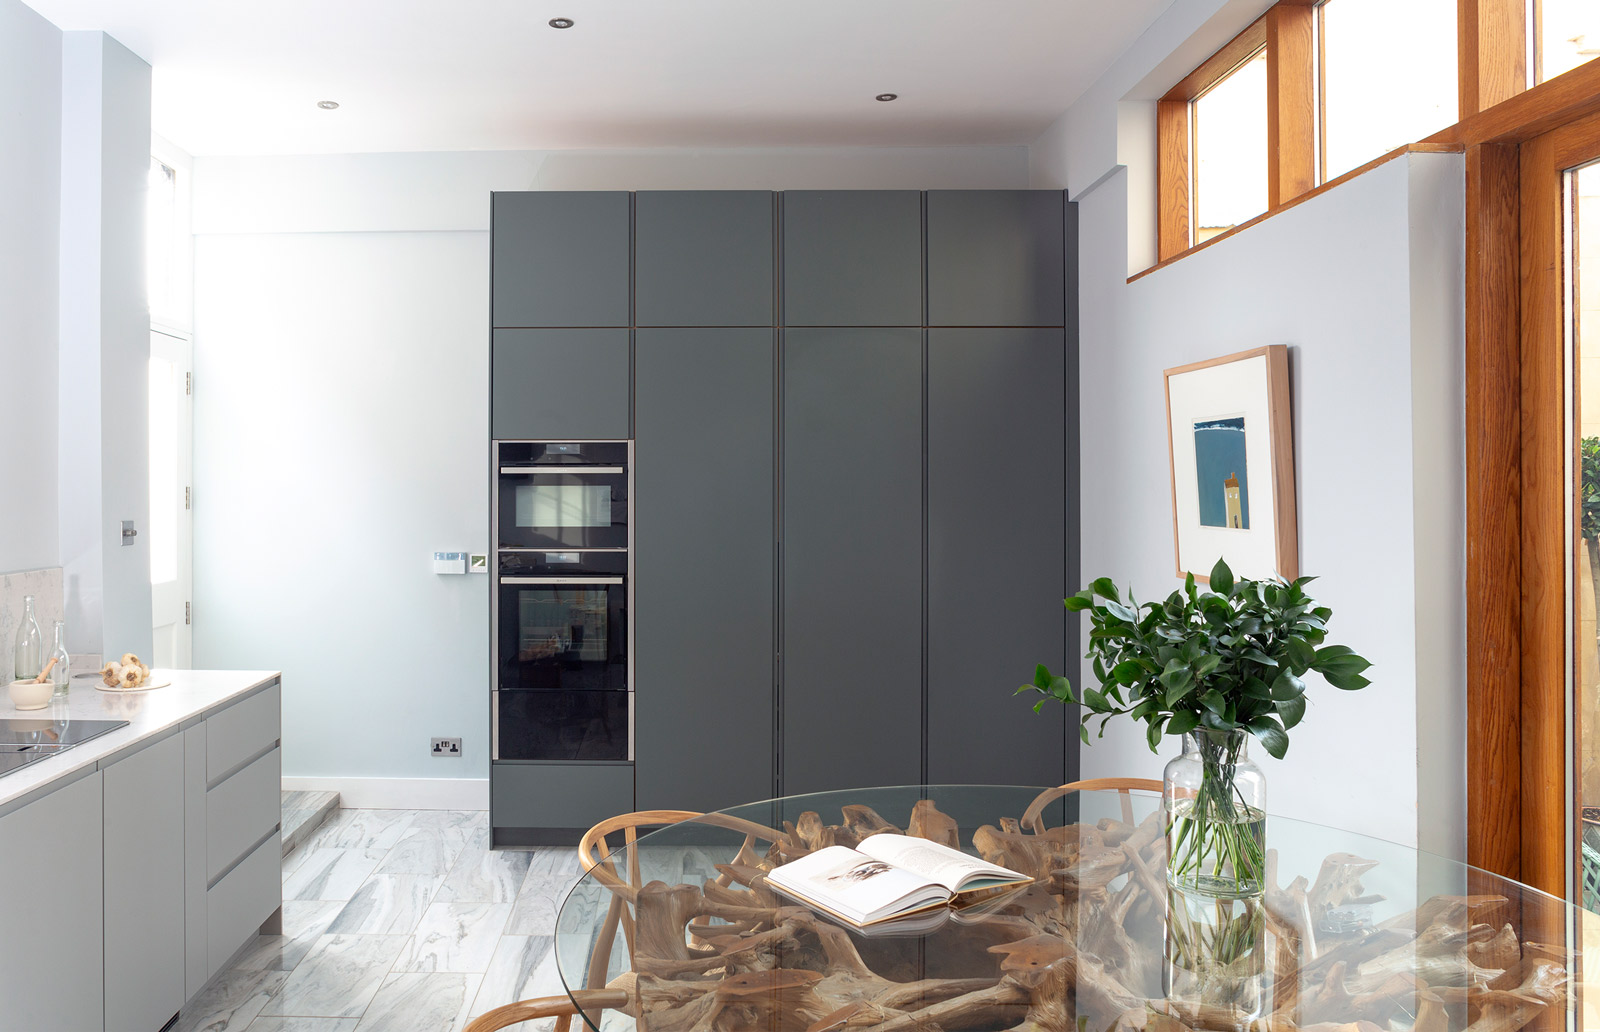 Understated minimal bespoke kitchen